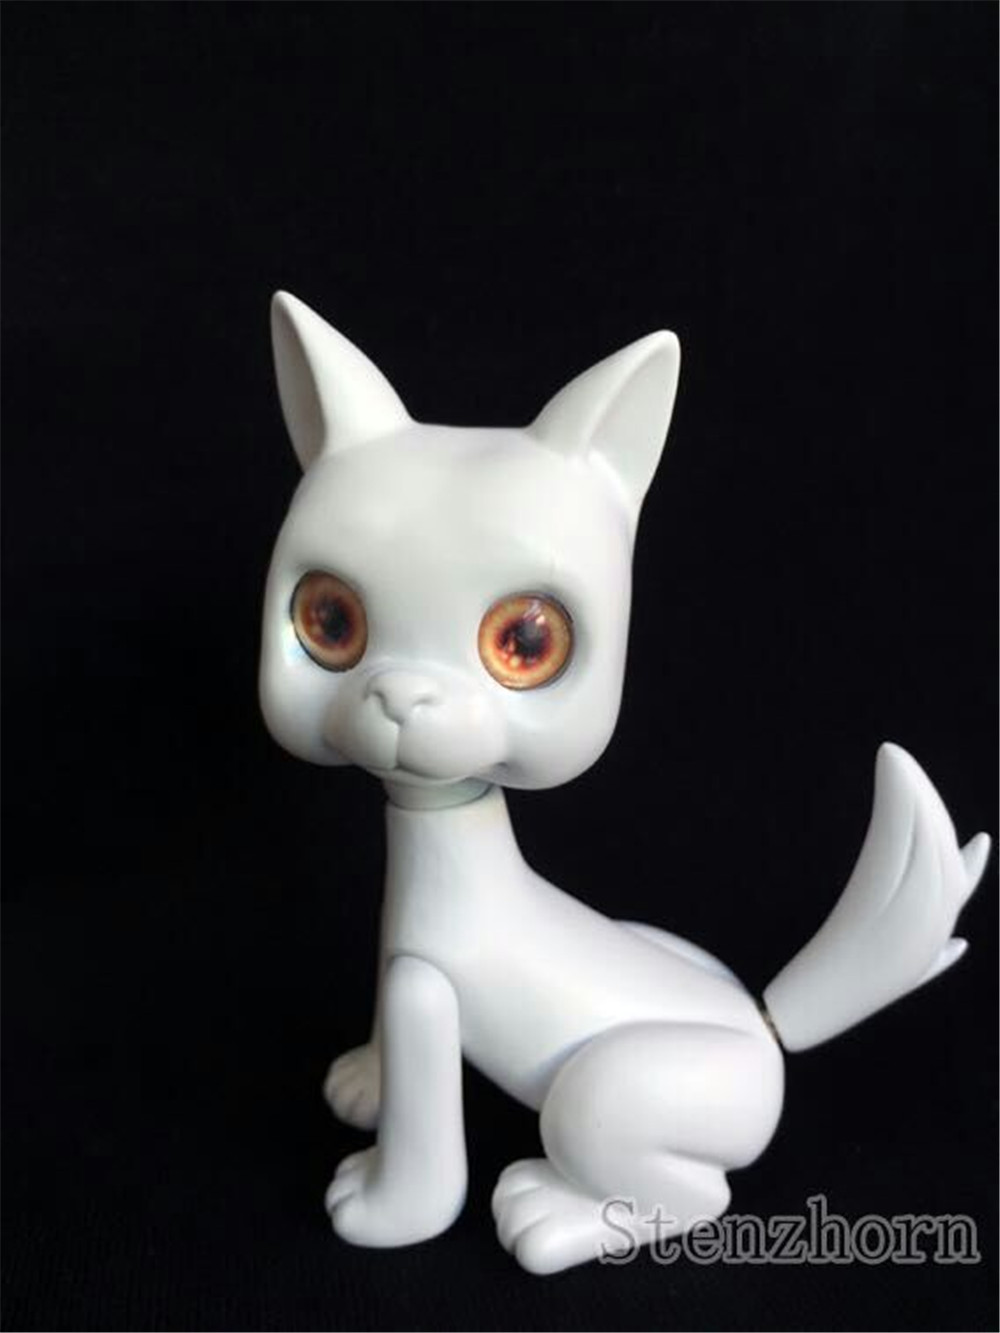 BJD / SD dolls little cat fashion toys birthday gifts high quality toys for saleBJD / SD dolls little cat fashion toys birthday gifts high quality toys for sale